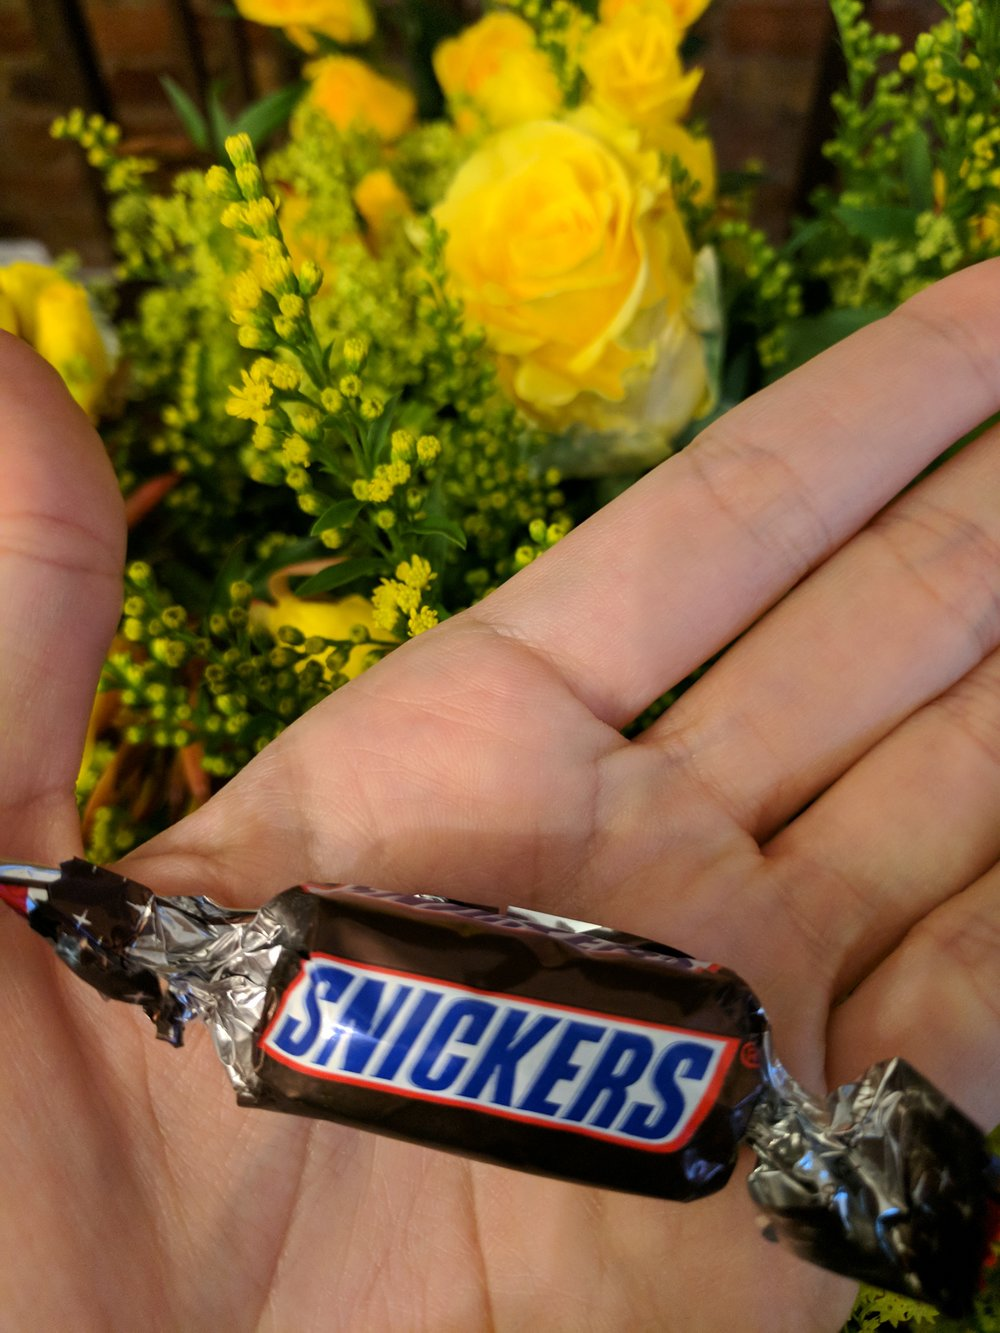 I haven't been able to eat my sweet thing today because I break down each time I try... I want to eat a Snickers, but that was Olivia's thing, not mine. Maybe I'll be able to eat a banana!